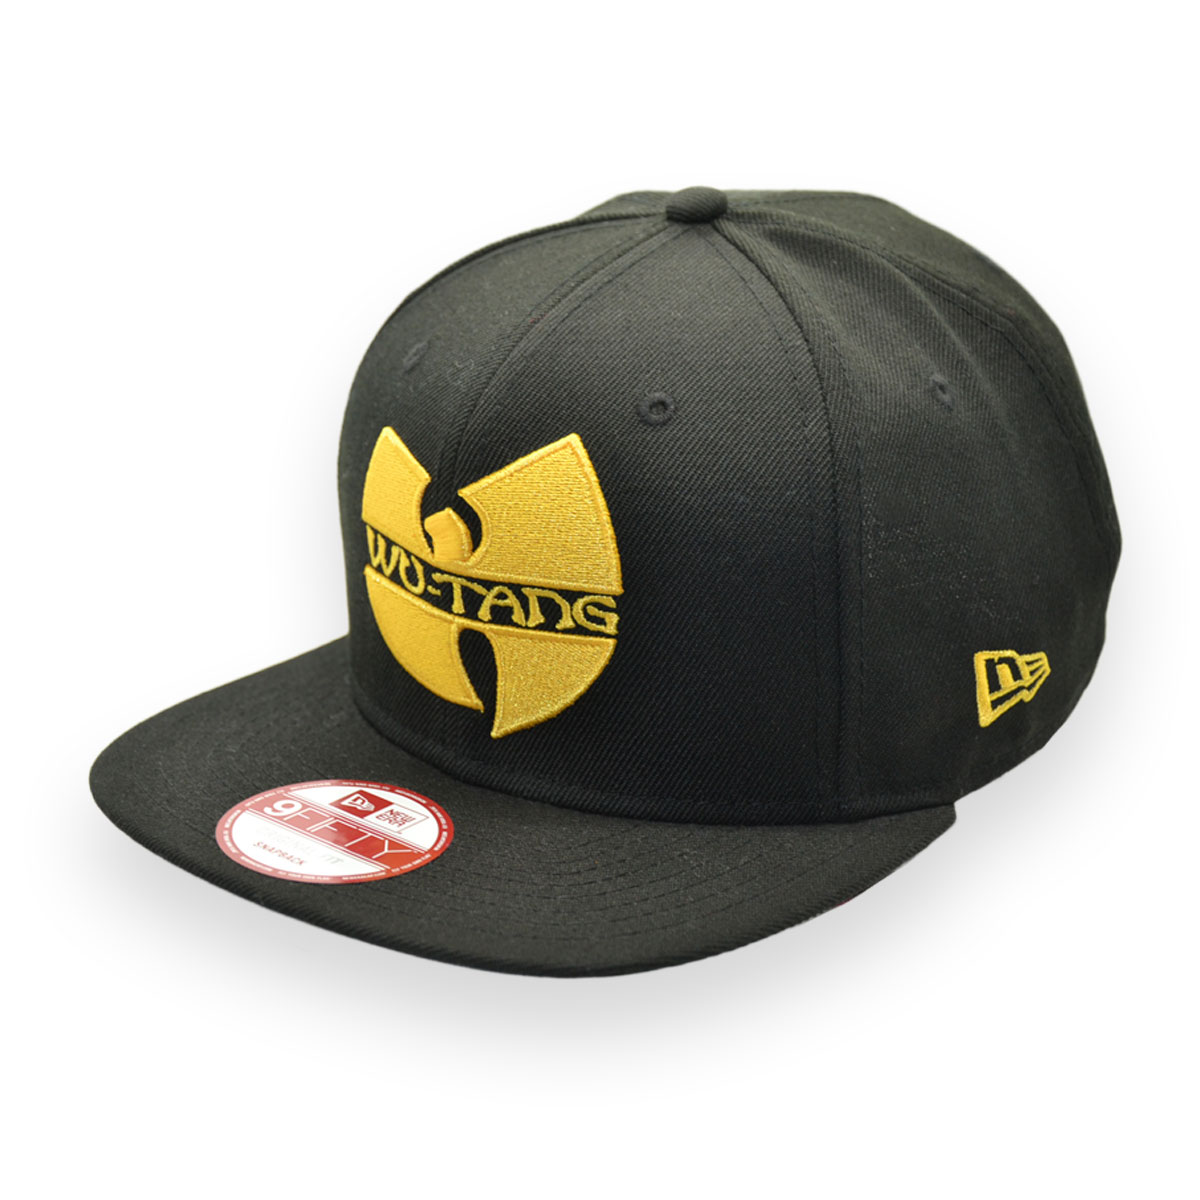 730a5be34f65a NEW ERA WU-TANG CLAN BLACK 9FIFTY SNAPBACK CAP - MyCraze